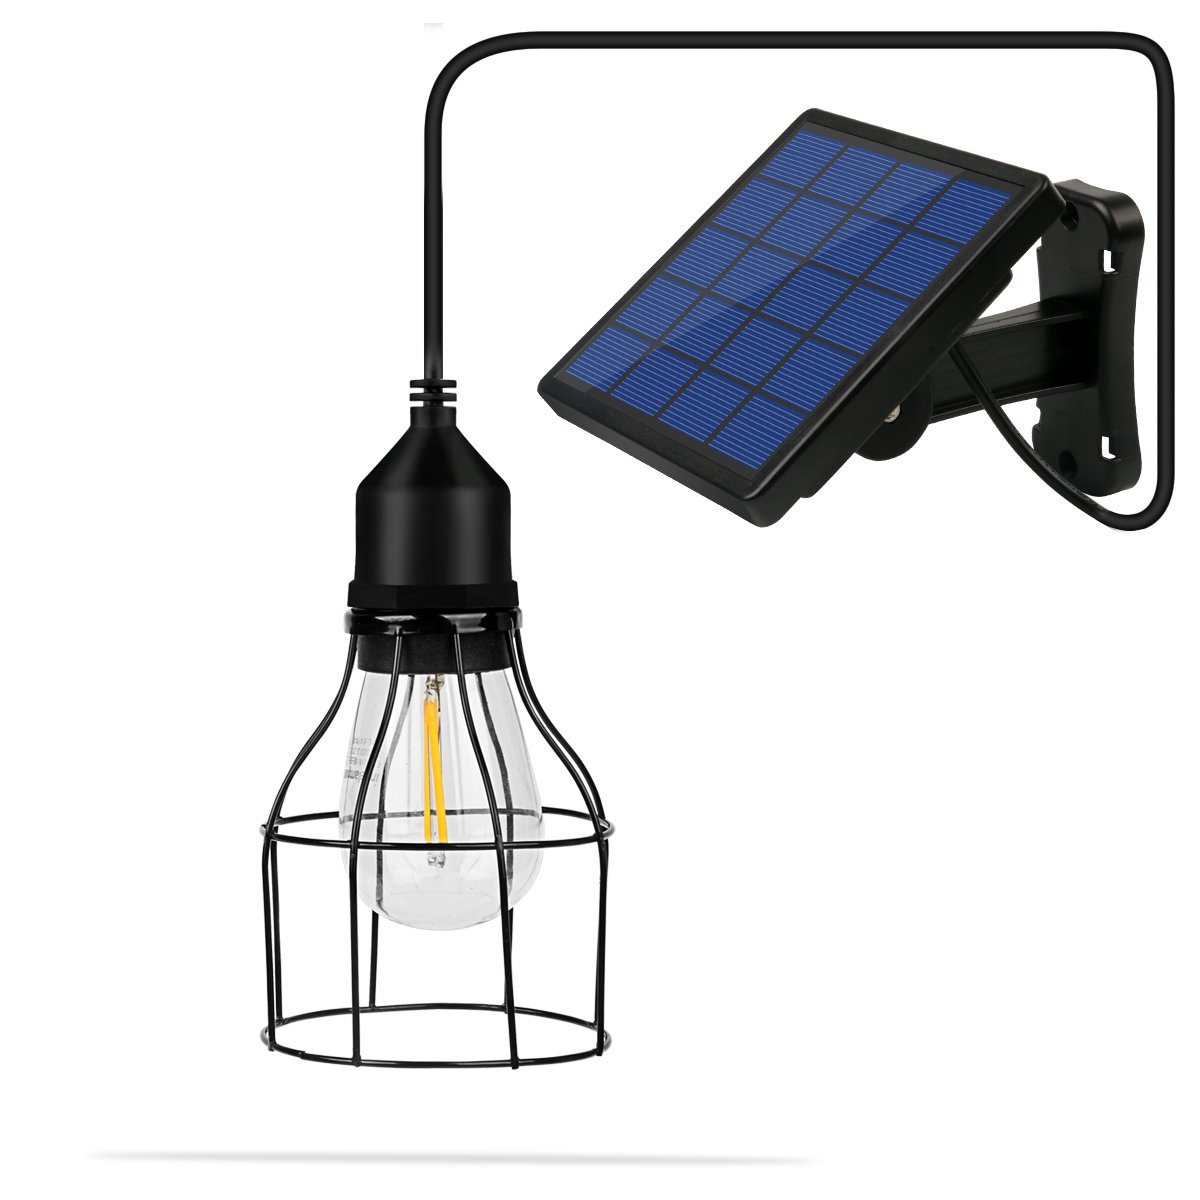 NINGZEXIN Vintage Hanging Metal Cage Outdoor Solar Powered Pendant Light E27 Industrial Edison Bulb 19 Ft Cord Shed Light Black Pendant Lamp With Changeable Solar Panel for Garden Yard Patio Home